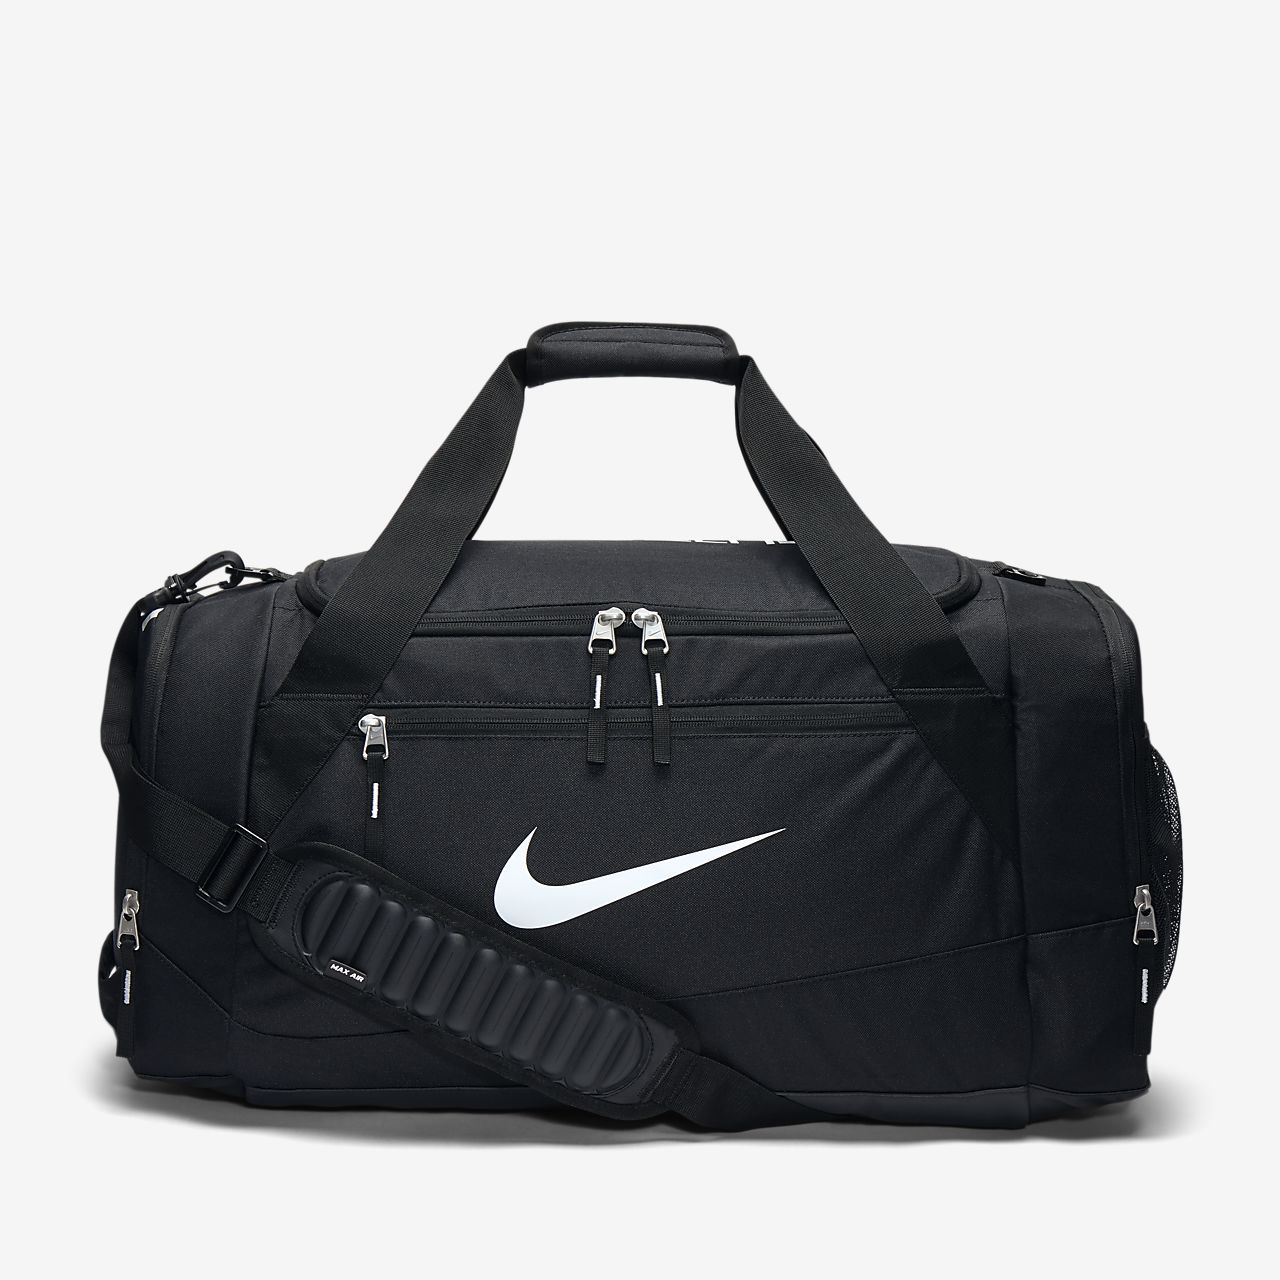 b77e14610d Nike Hoops Elite Max Air Team (Large) Basketball Duffel Bag ...